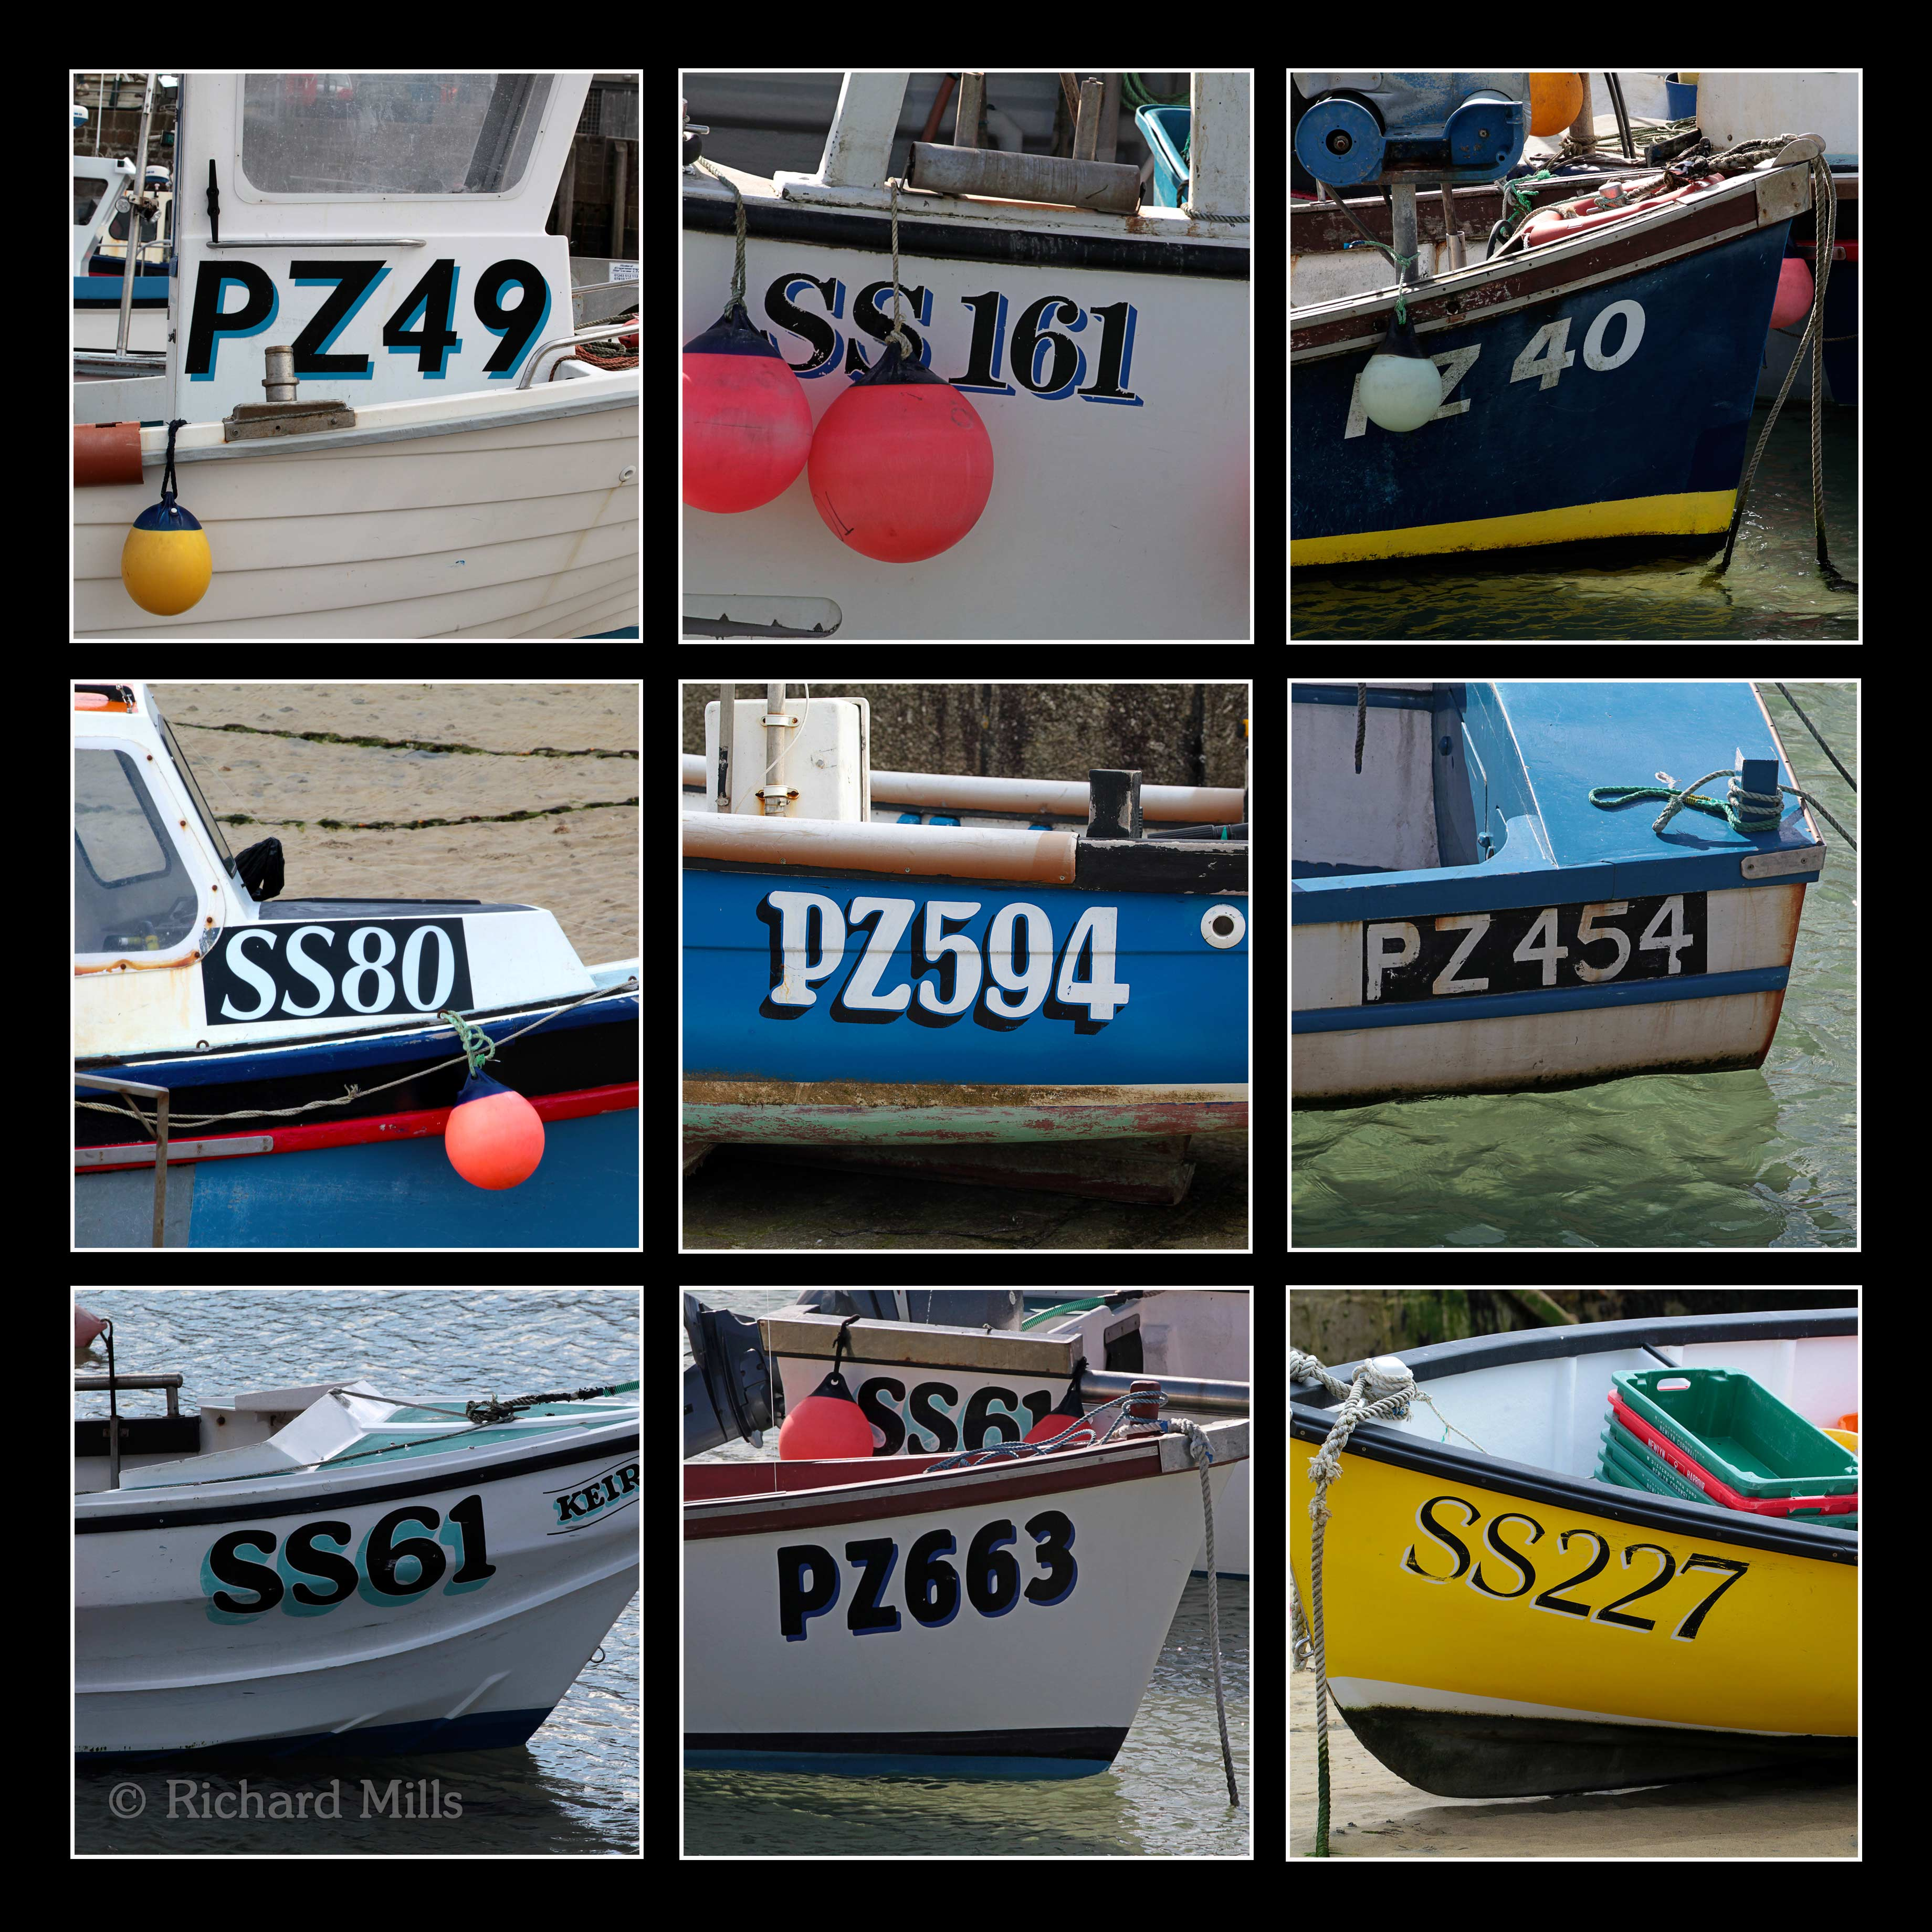 Boat Numbers